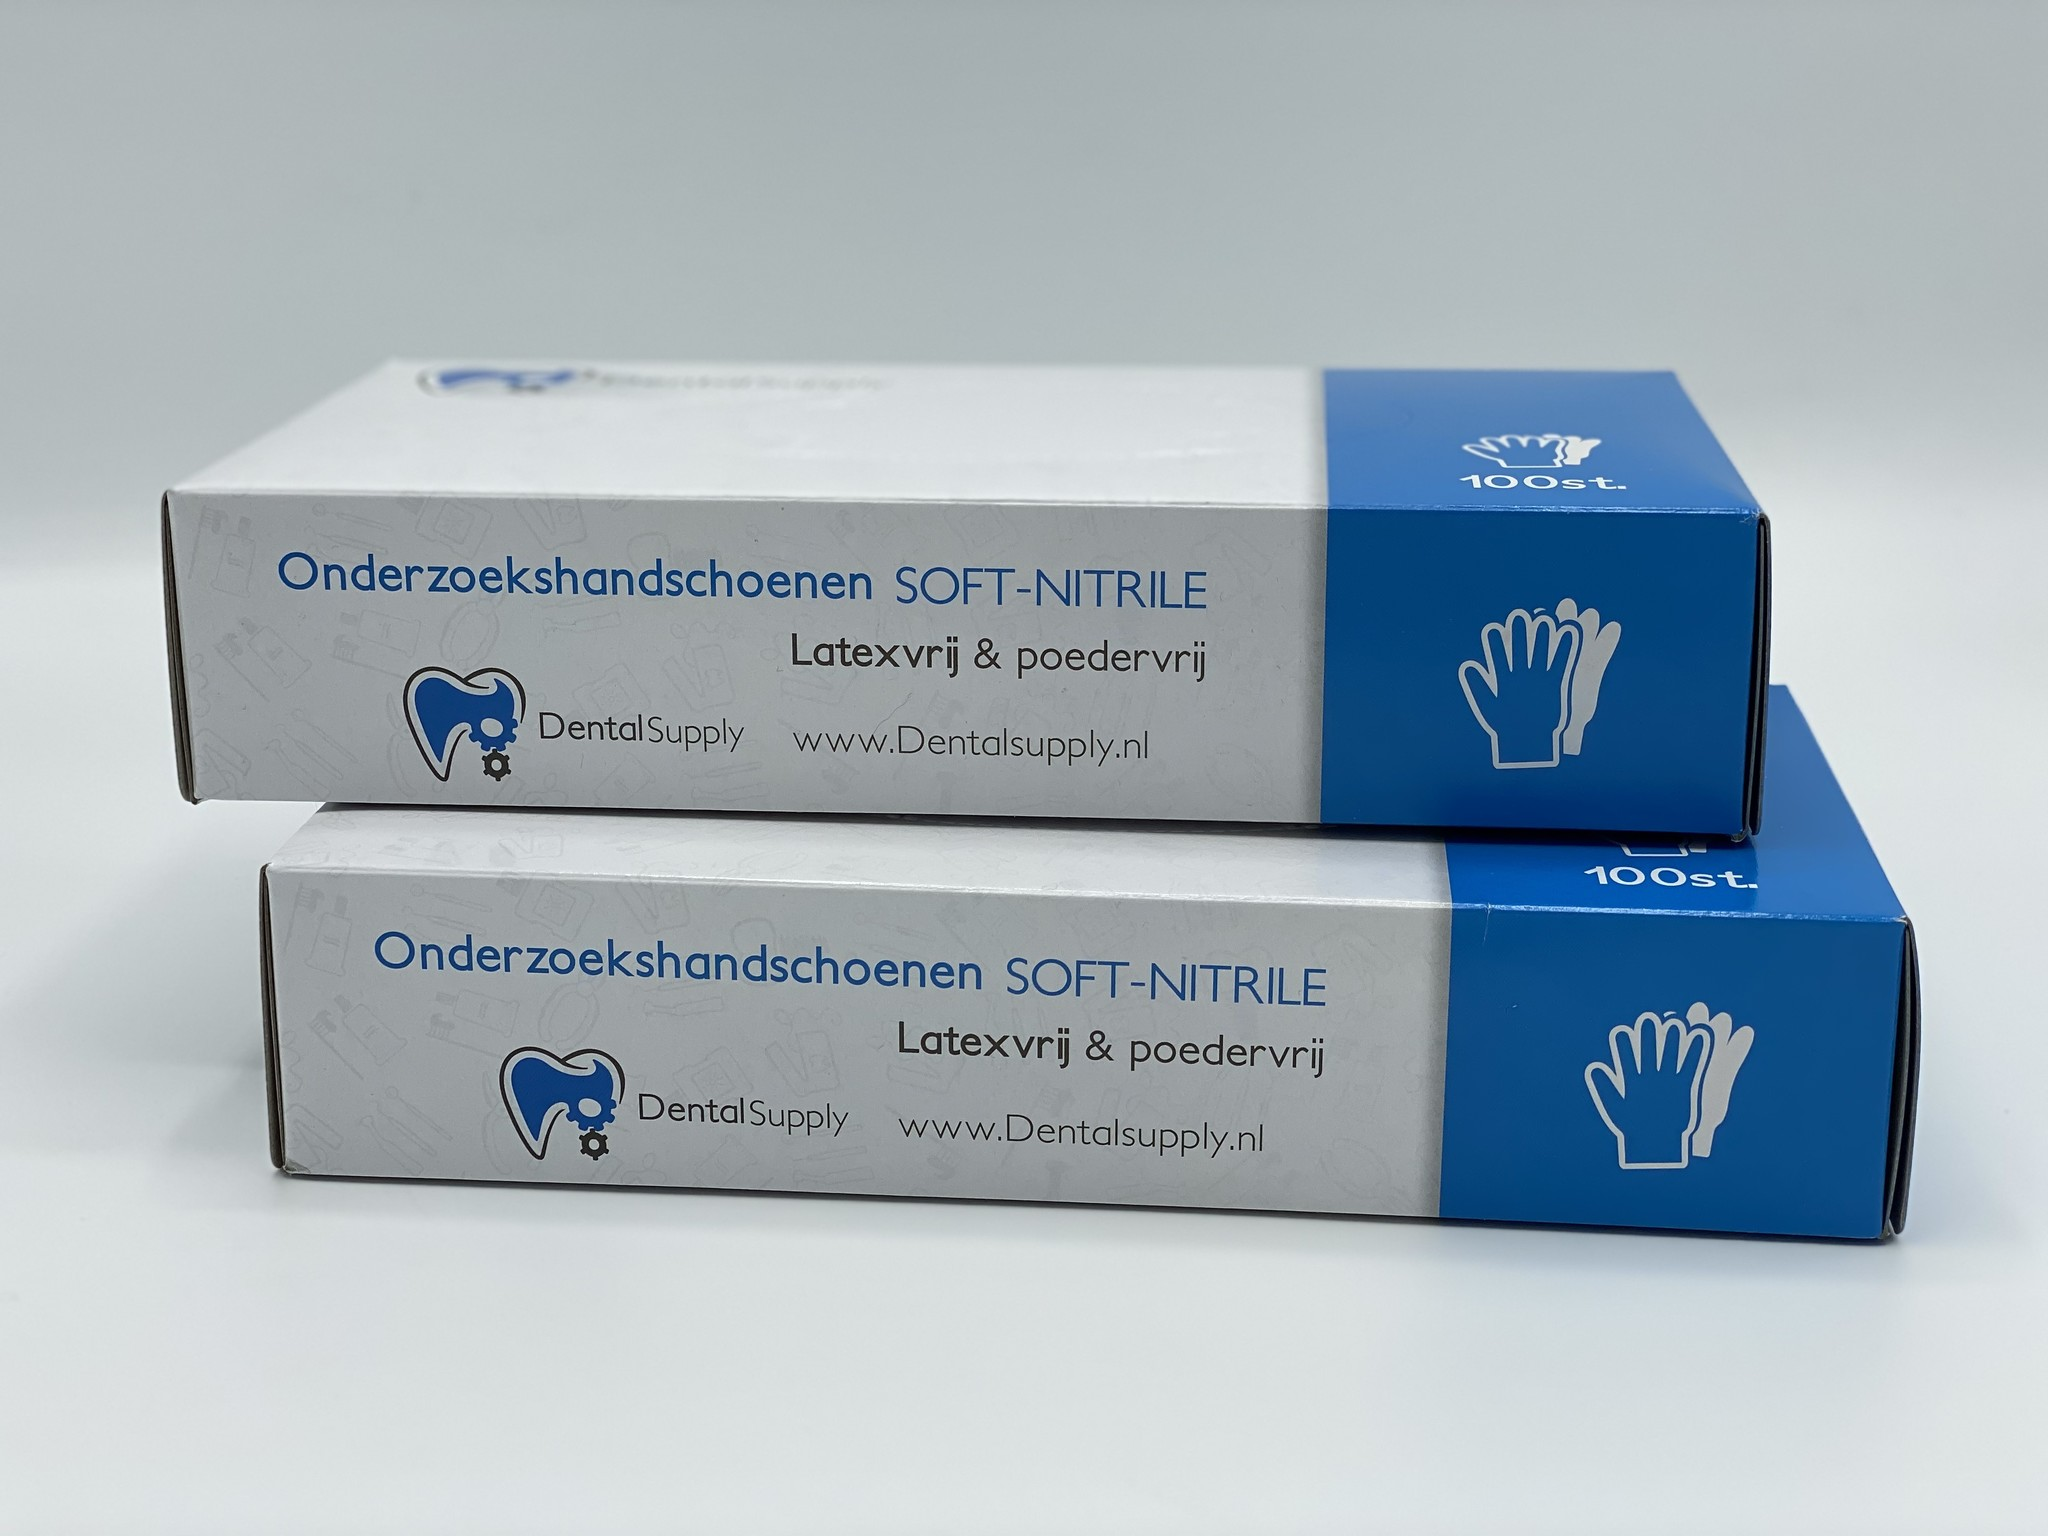 Glove Soft Nitrile PF, full certification - small 100 pieces